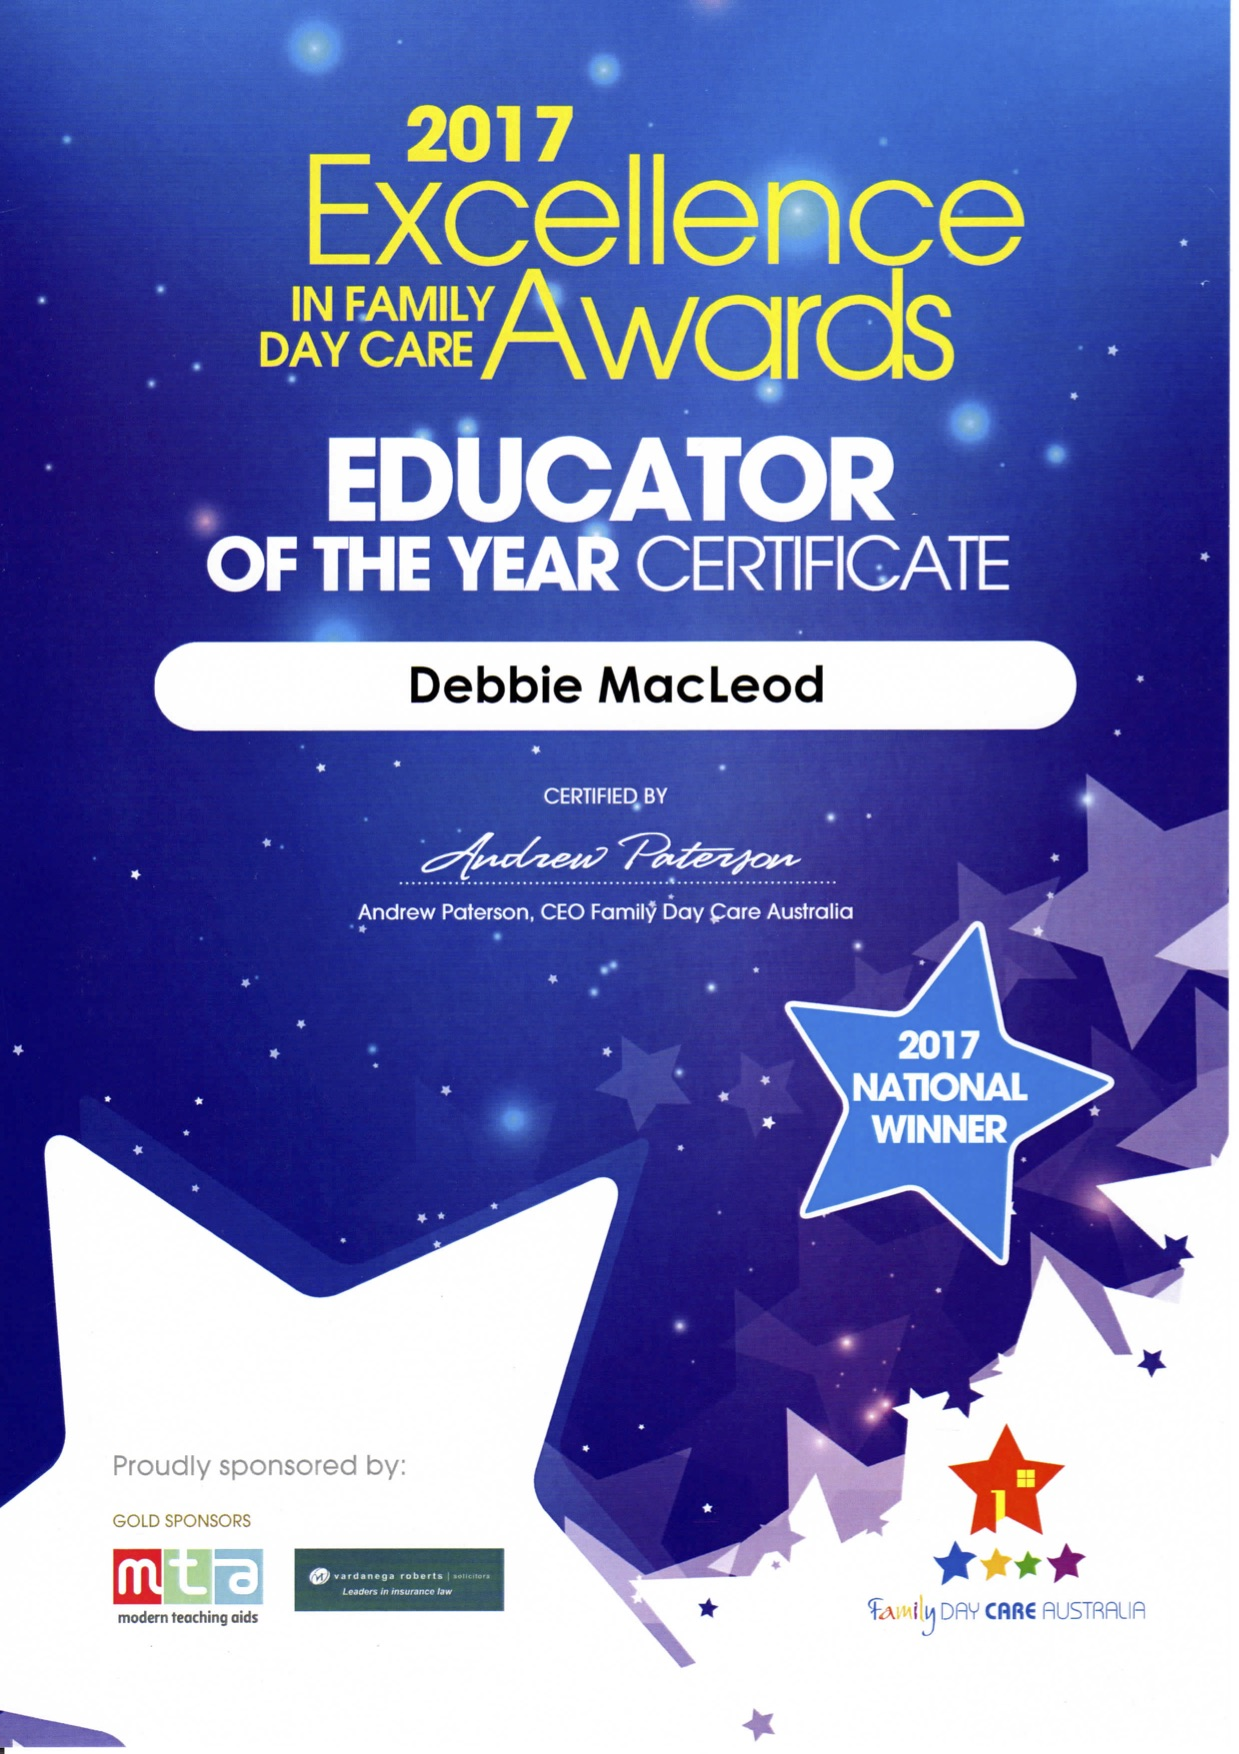 EDUCATOR OF THE YEAR NATIONAL WINNER 2017